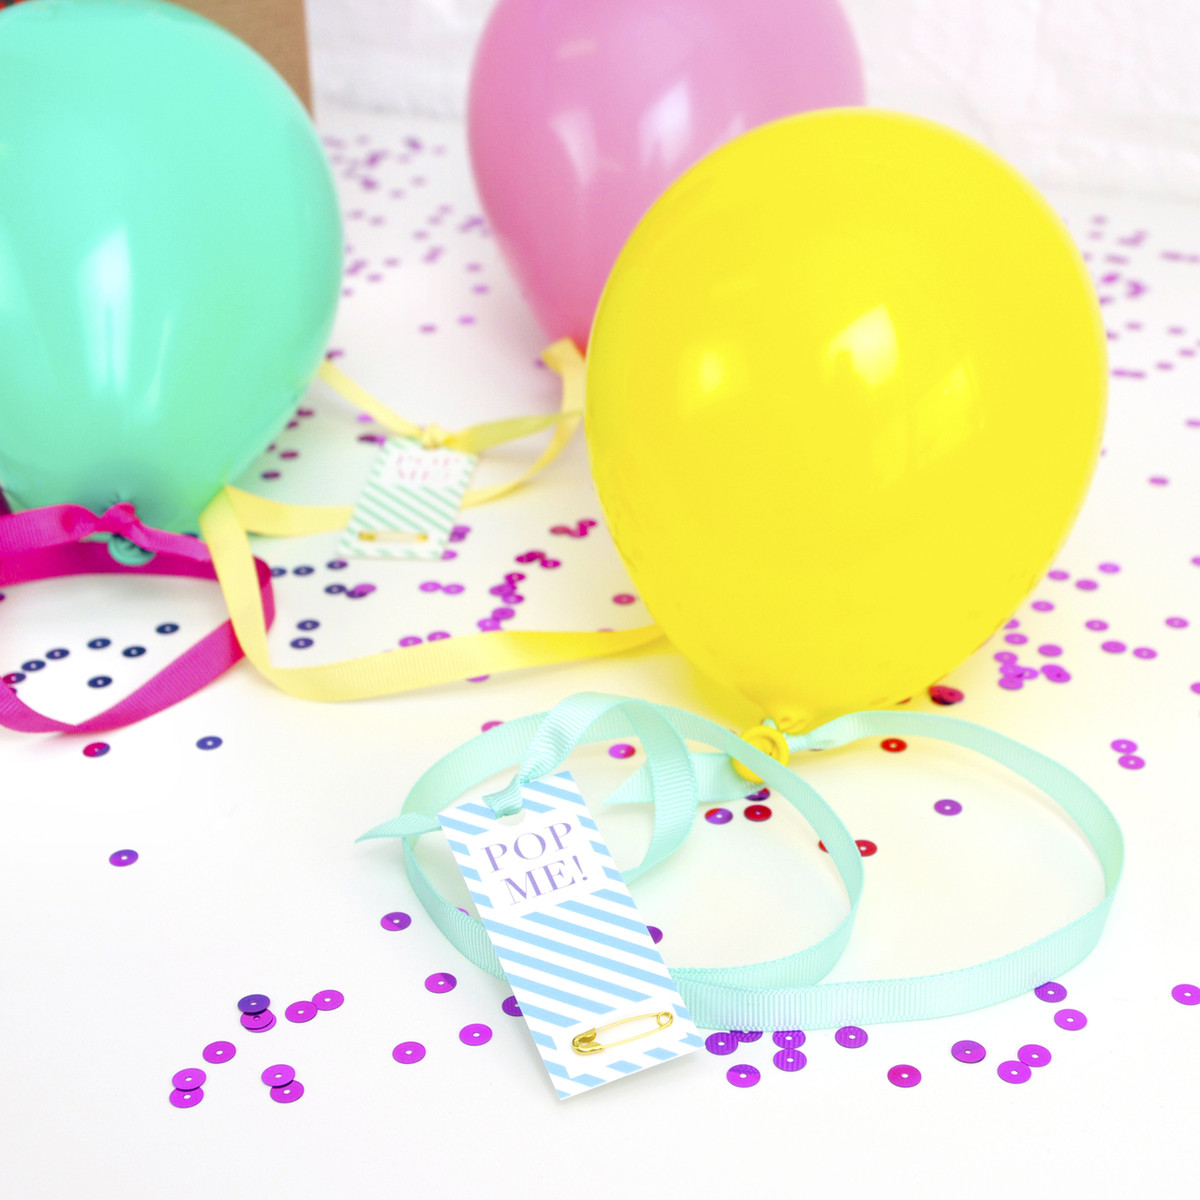 Personalised Message Balloon For Fun Surprise Birthday Gifts Like Concert Tickets Holidays And Popping The